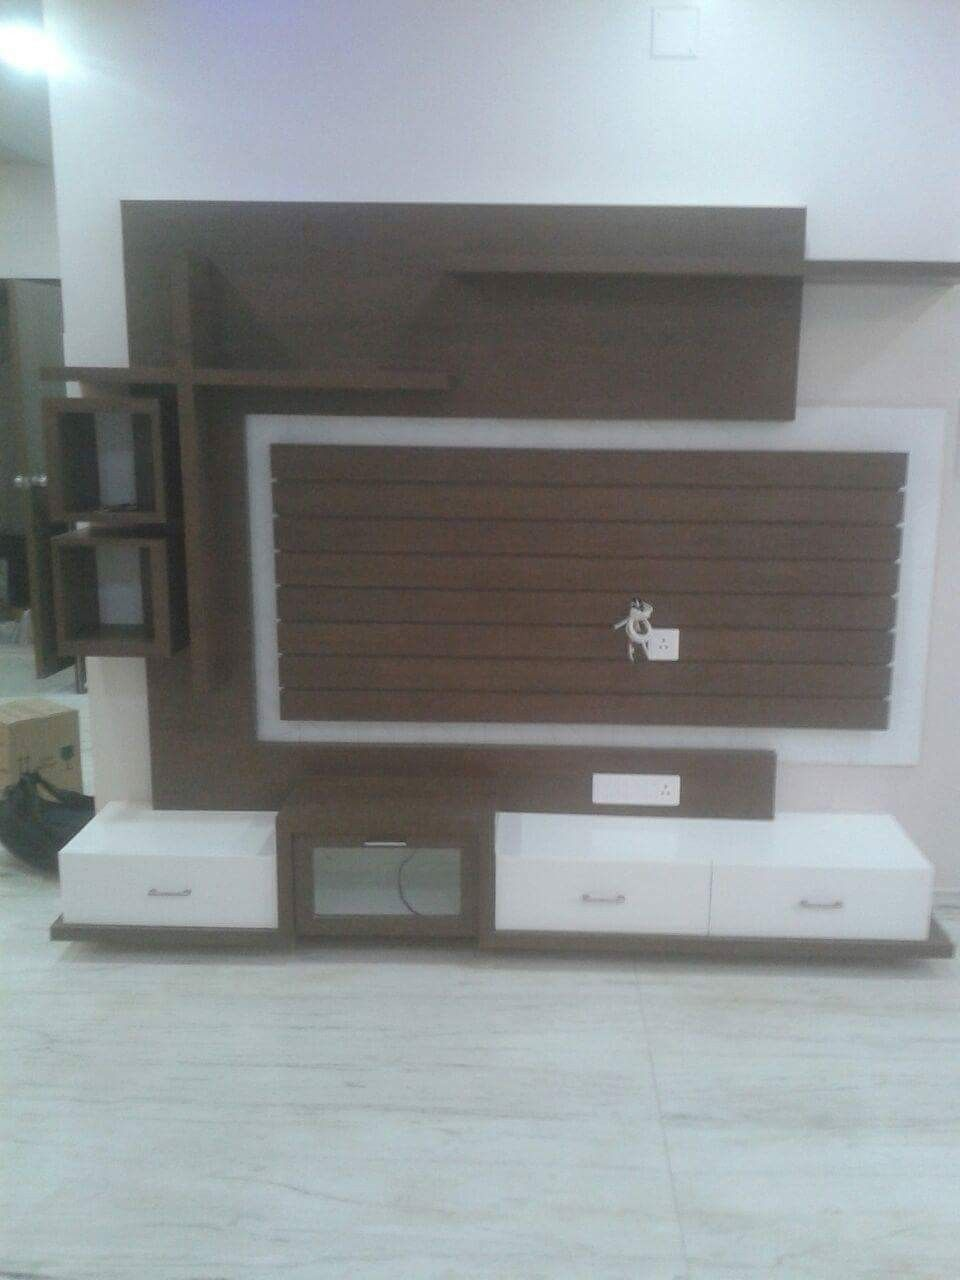 Pin By Mallikarjuna On T V Cabinet: Pin By Chandru On Architecture